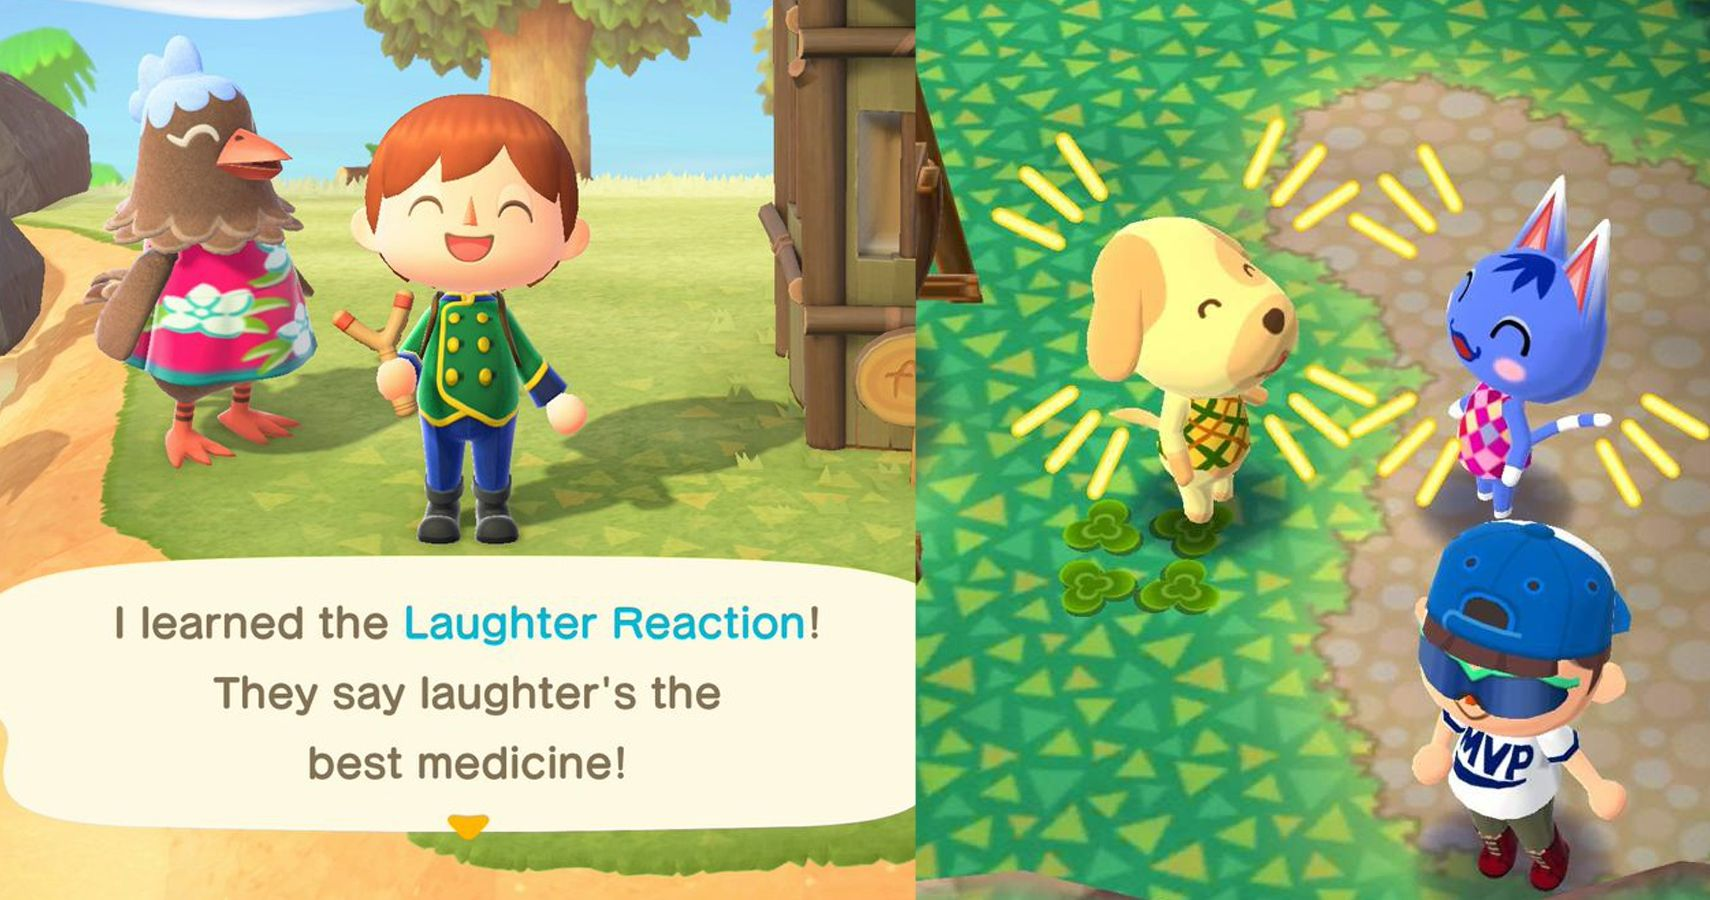 Animal Crossing New Horizons 15 Hilarious Quotes You Might Have